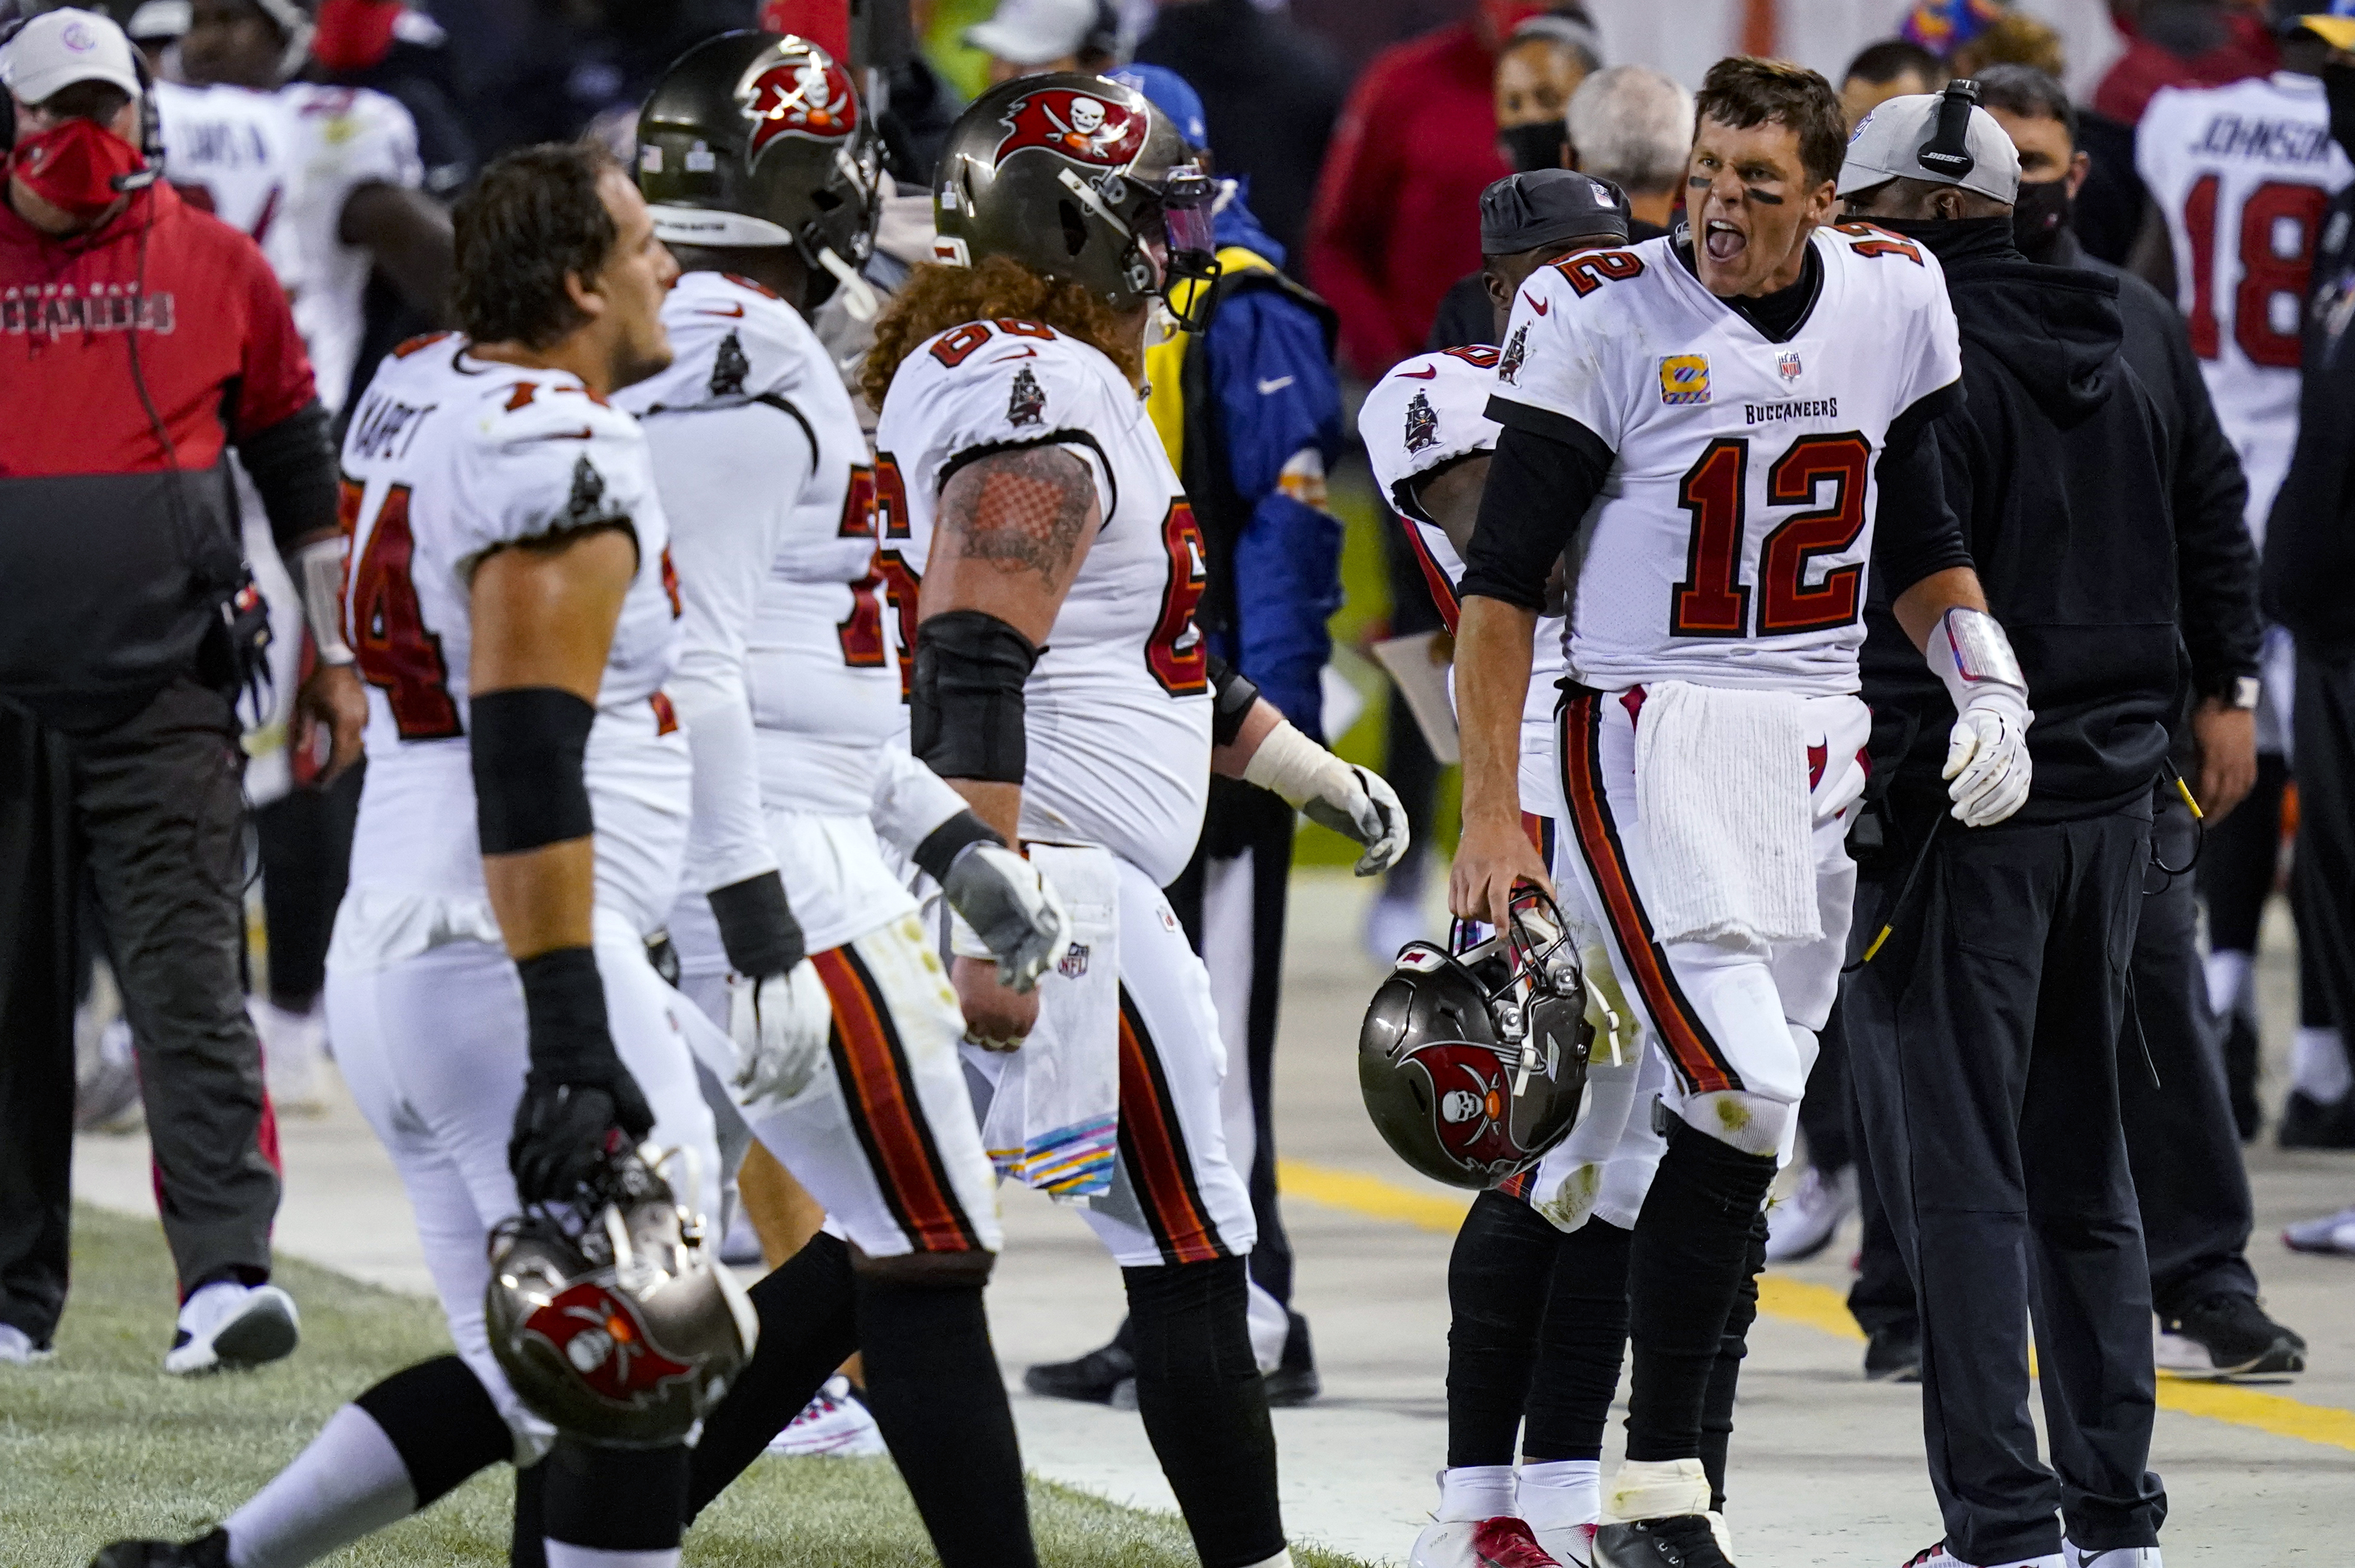 Tom Brady S Senior Moment Clinched Tampa Bay S Loss To Chicago The Washington Post